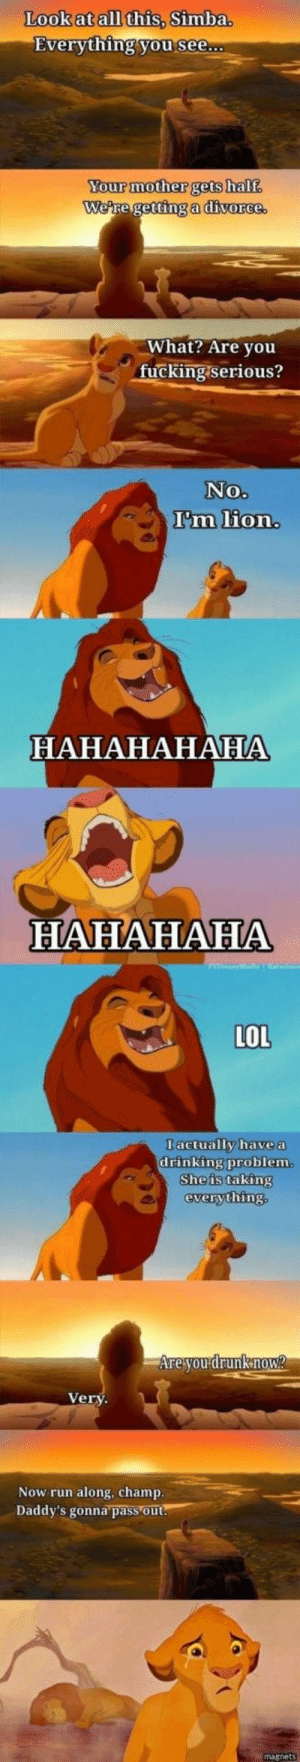 lolsupport:  When Disney gets real: Look at all this, Simba.  Everything you see...  Your mother gets half  We're getting a divorce.  What? Are you  fucking. serious?  No.  I'm lion.  НАНАНАНАНА  HAHAHAHA  LOL  I actually have a  drinking problem.  She is taking  everything.  Are you drunkmow?  Very  Now run along, champ.  Daddy's gonna pass out.  magnets lolsupport:  When Disney gets real